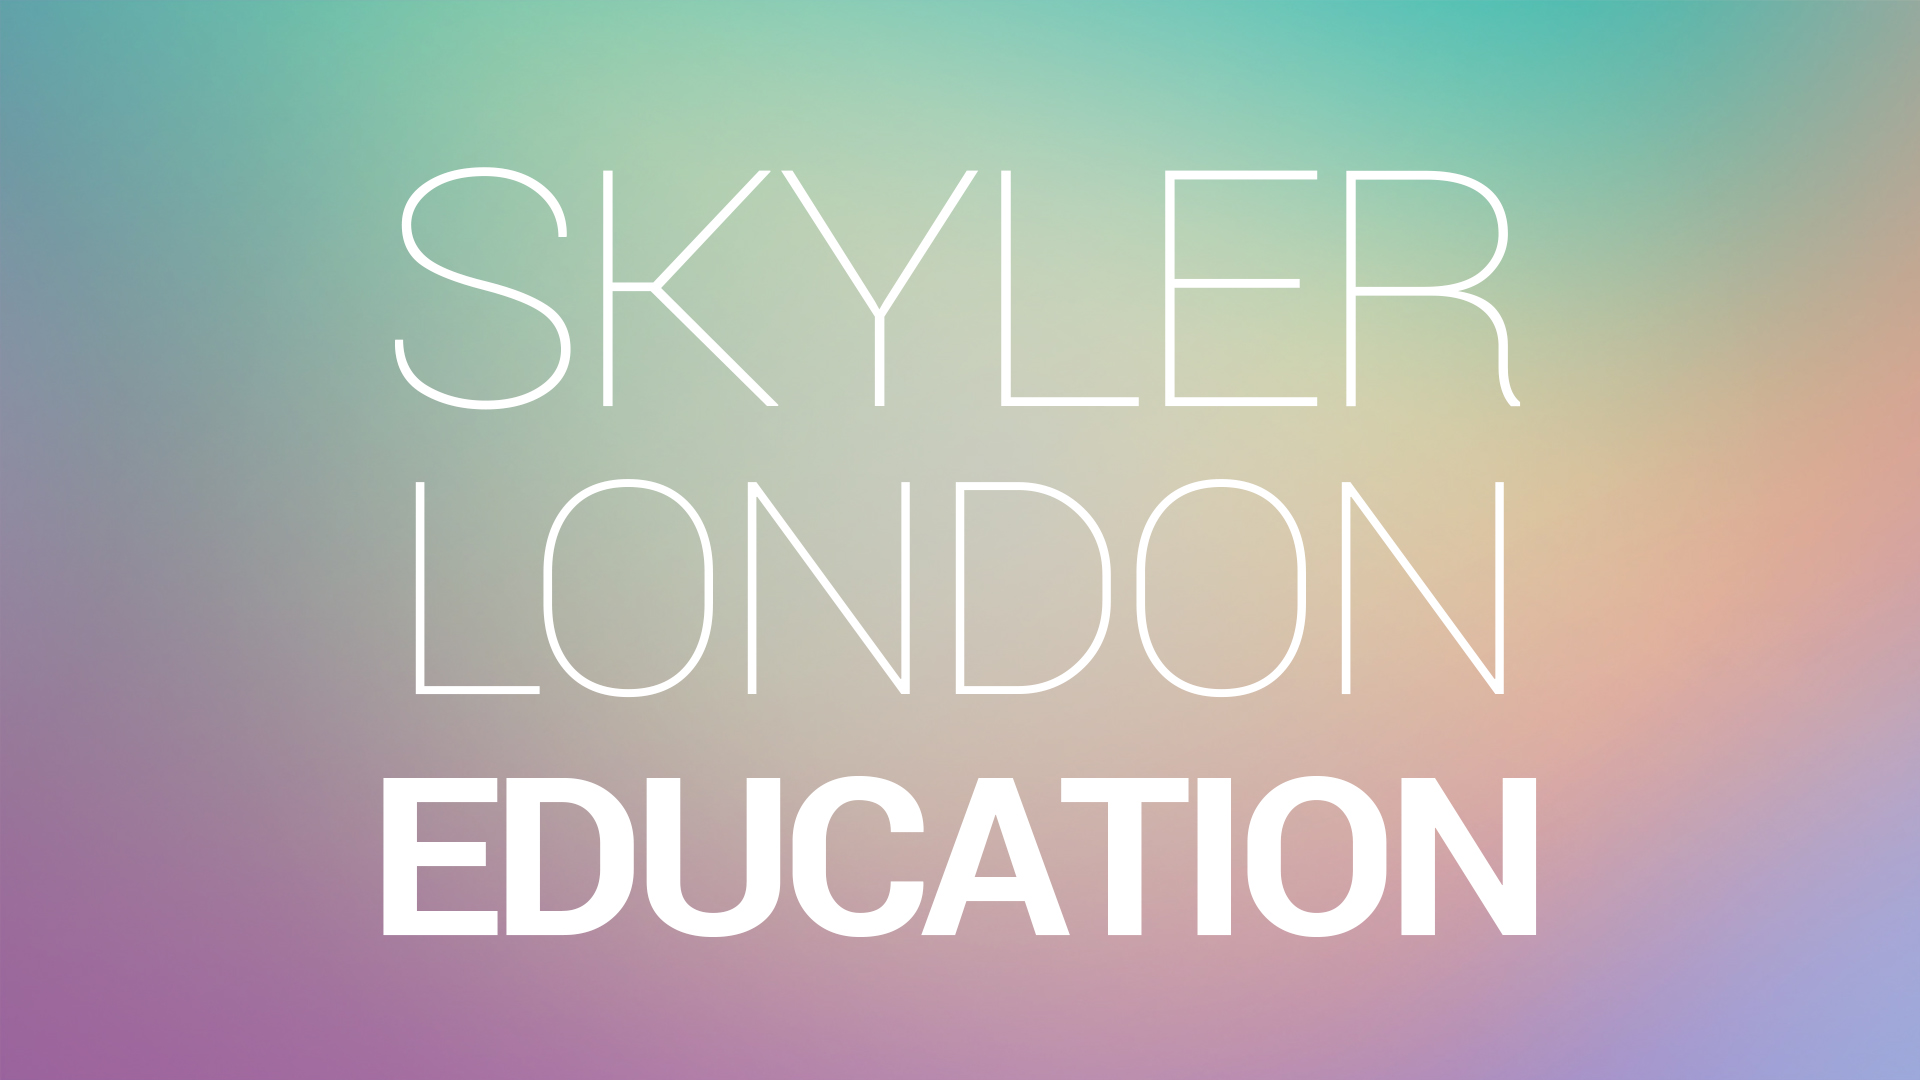 Skyler London Education